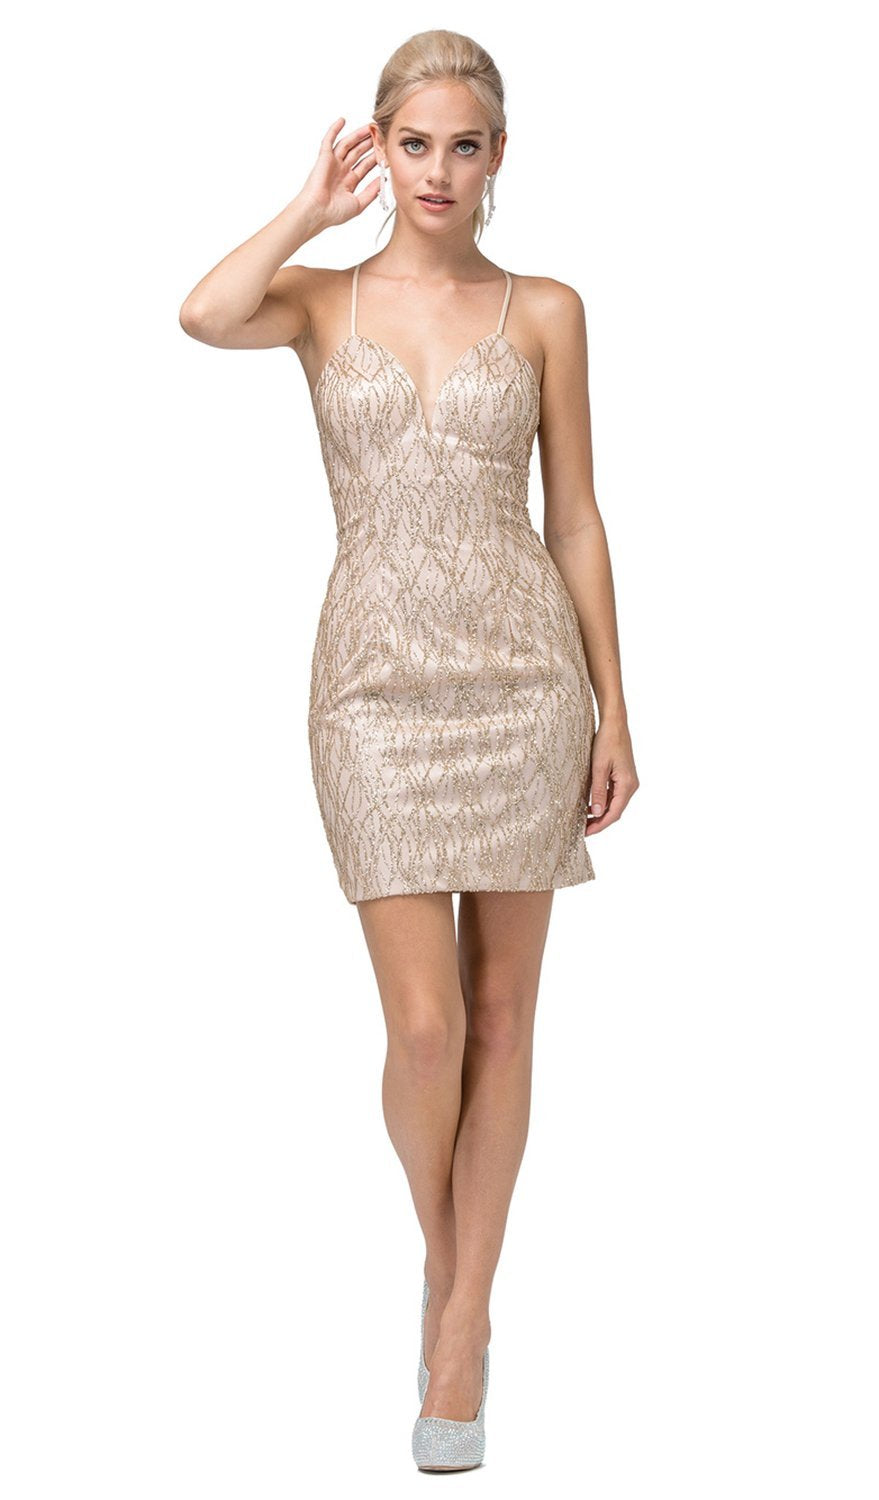 Dancing Queen - 3128SC Sleeveless Bodycon Shimmer Cocktail Dress